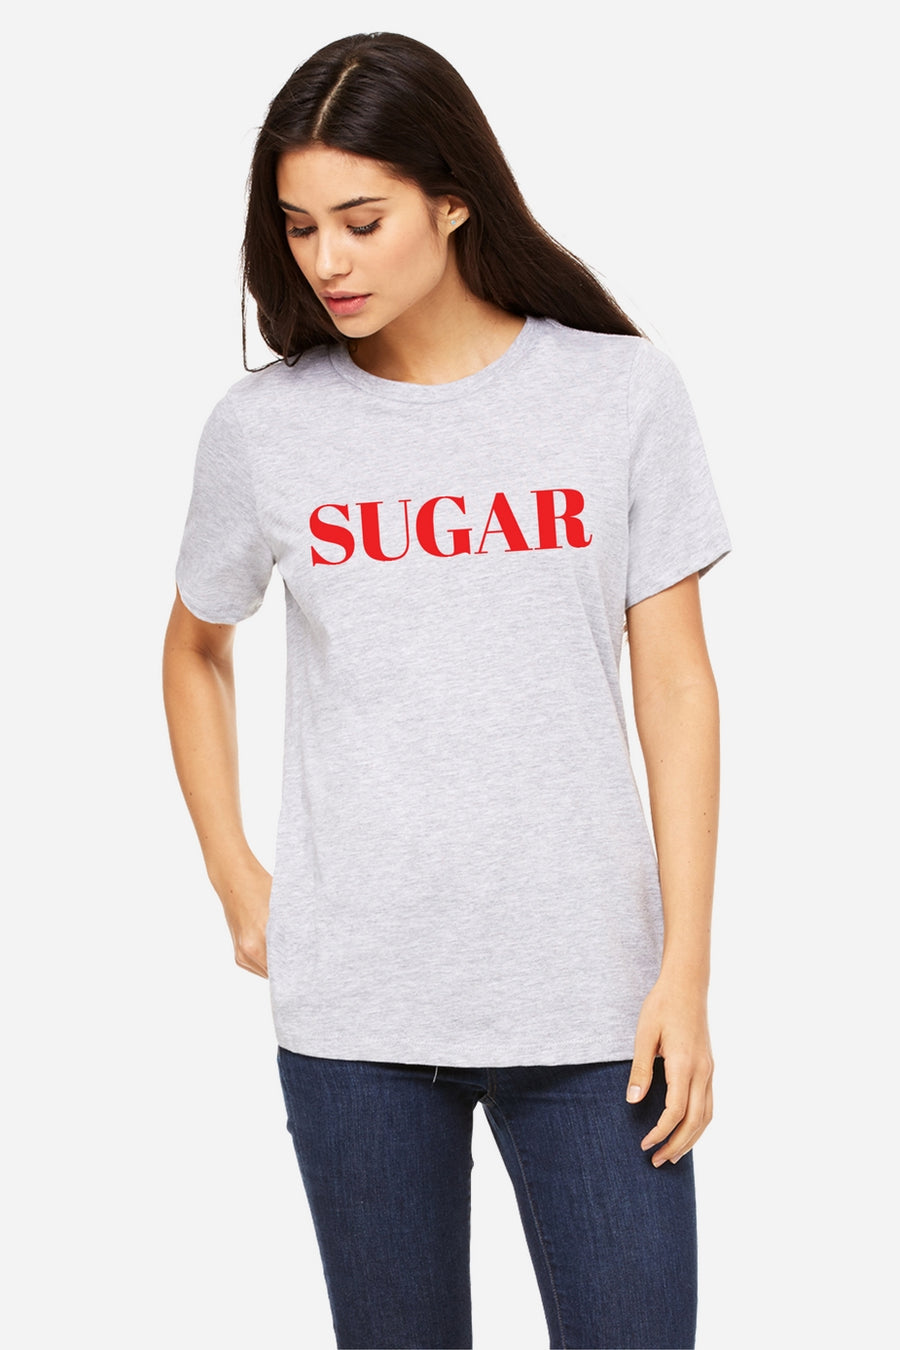 Six + Row Sugar Slogan White Tee